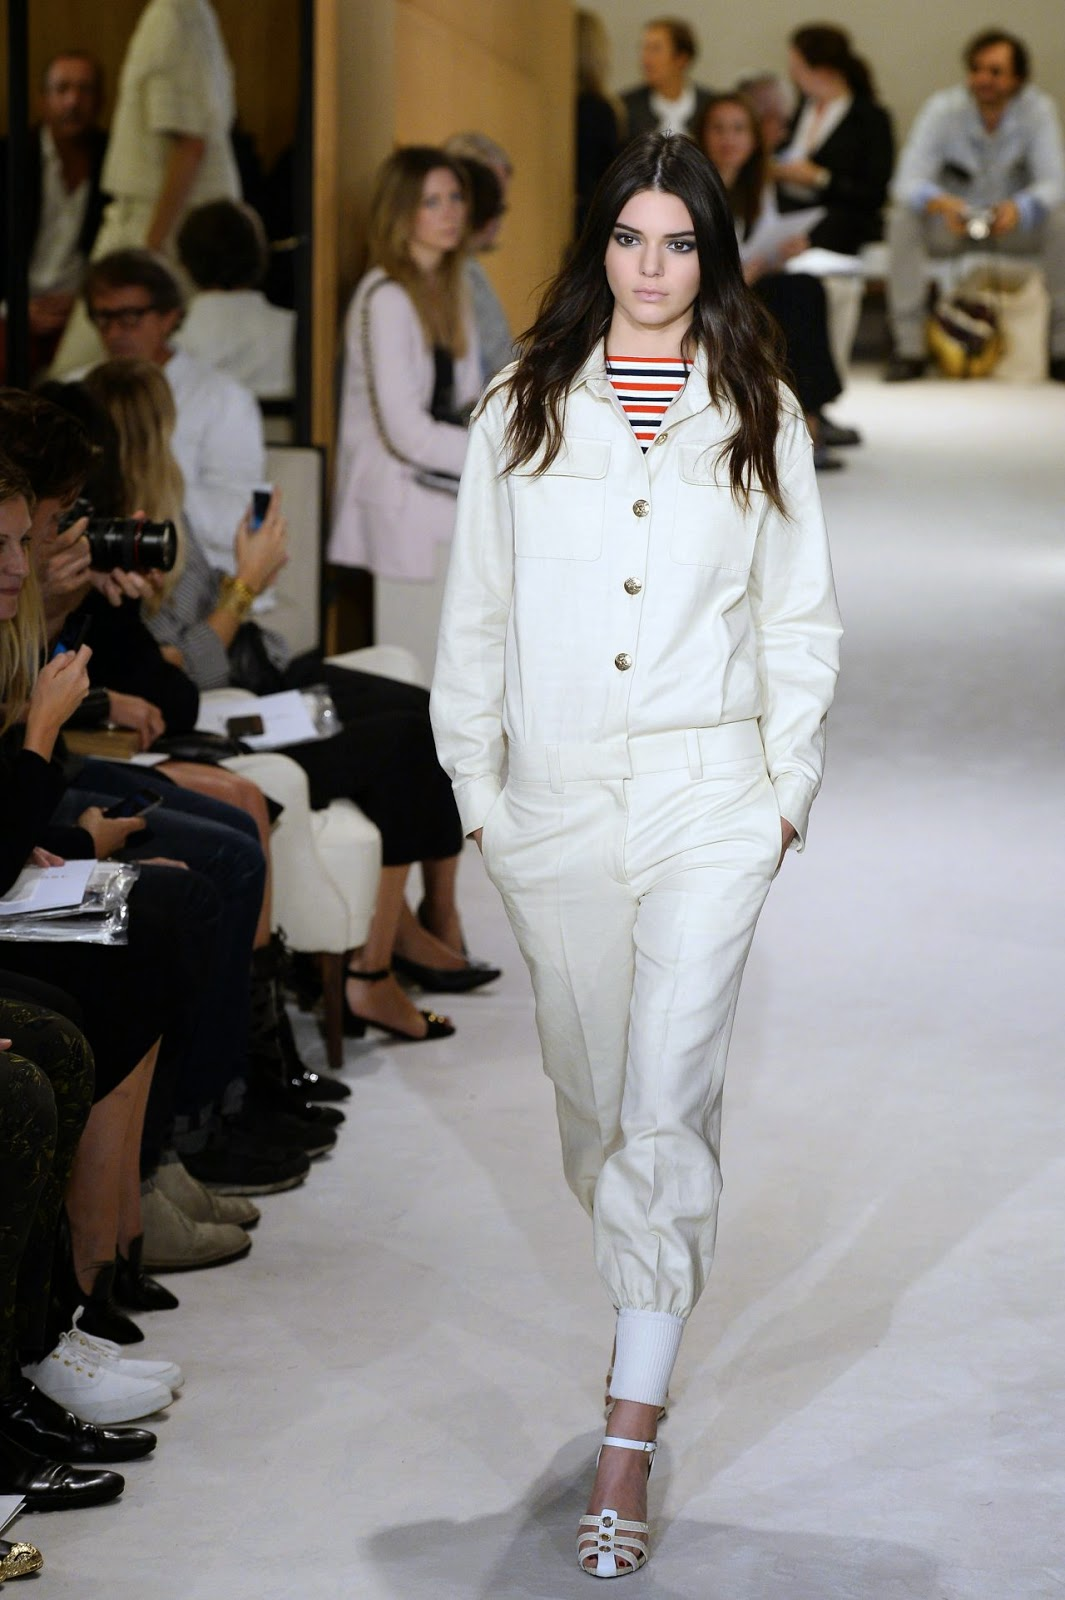 Kendall Jenner - Sonia Rykiel Spring/Summer 2015 Paris Fashion Week Show